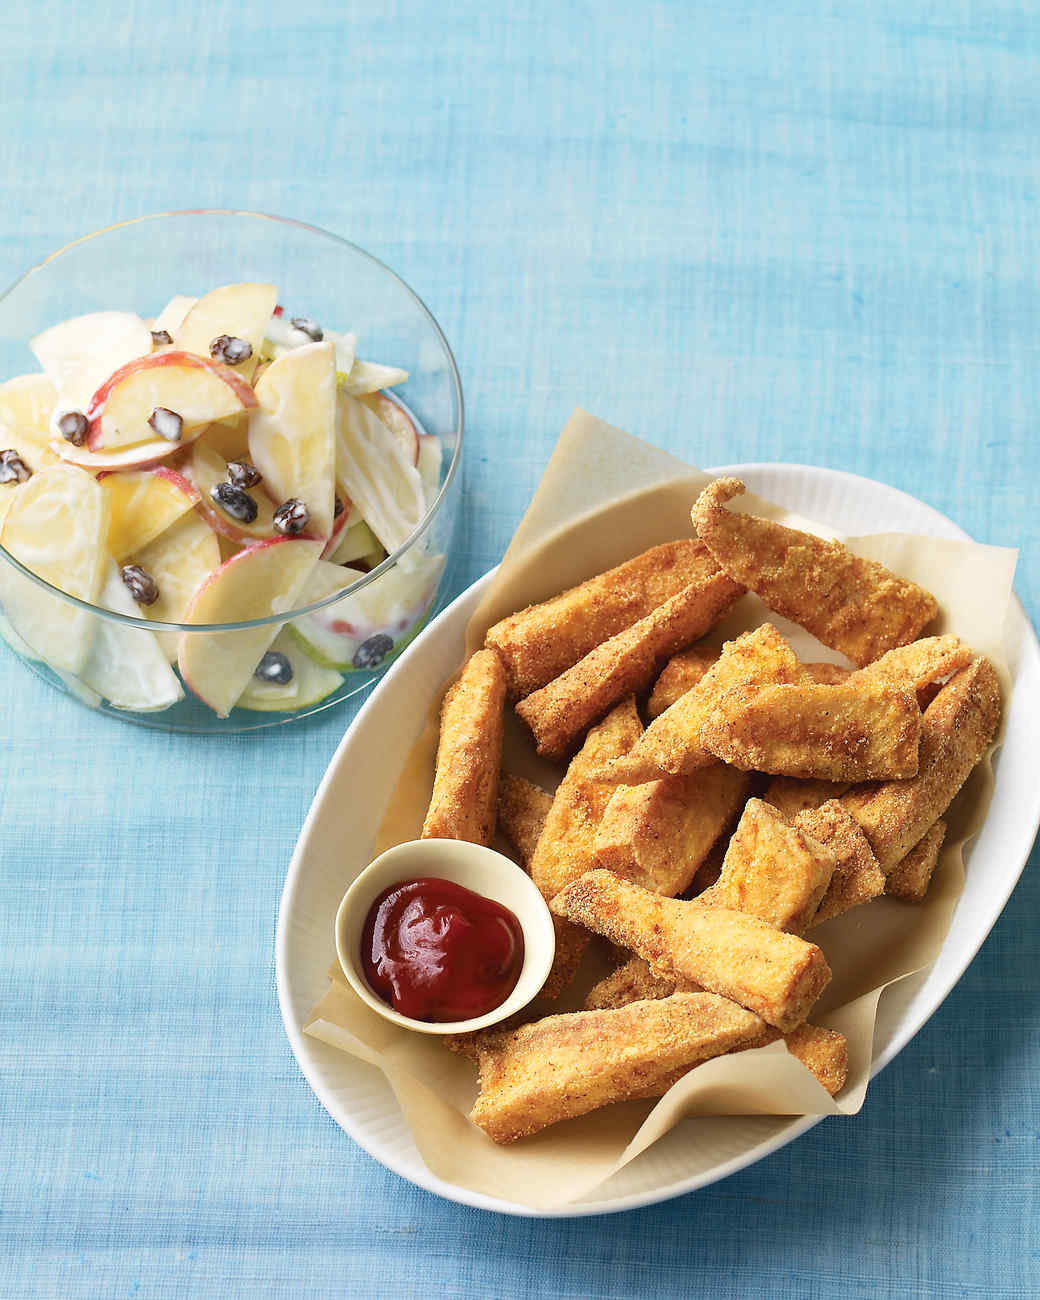 Fried fish and shellfish recipes martha stewart for Cornmeal fried fish